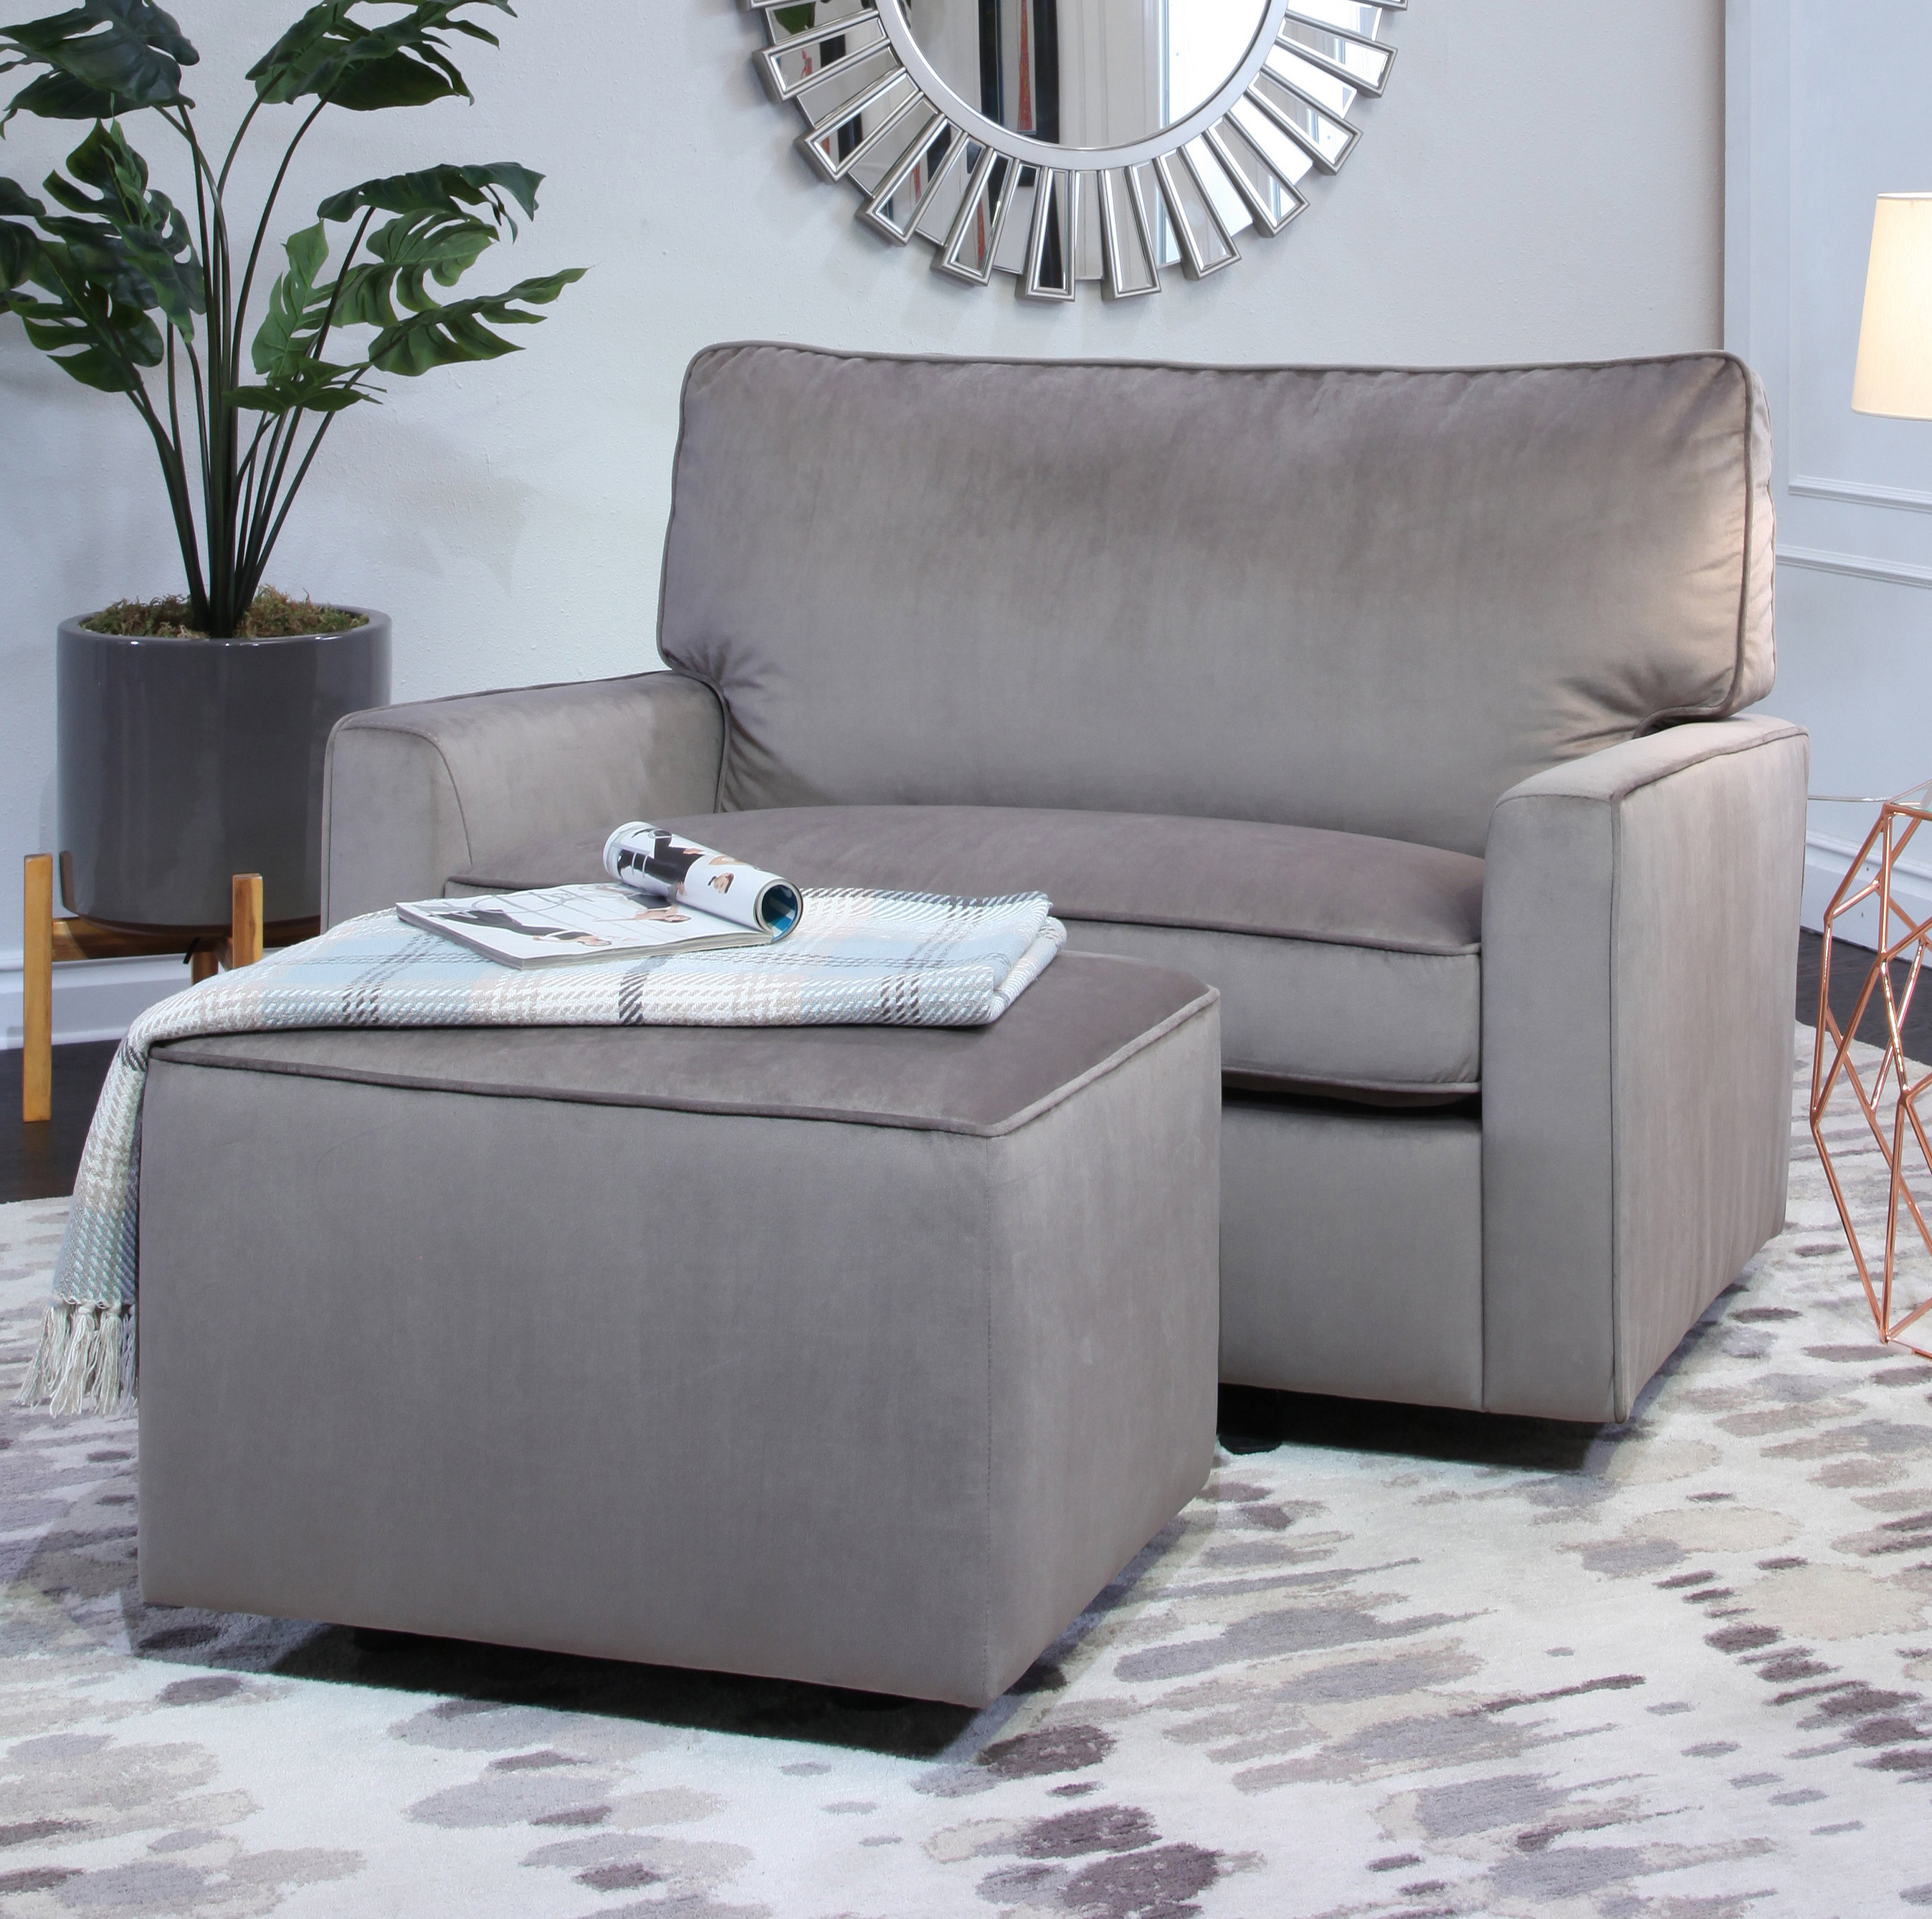 Harriet Bee Craner Oversized Glider Chair And Ottoman | Wayfair For Sheldon Oversized Sofa Chairs (Photo 16 of 20)